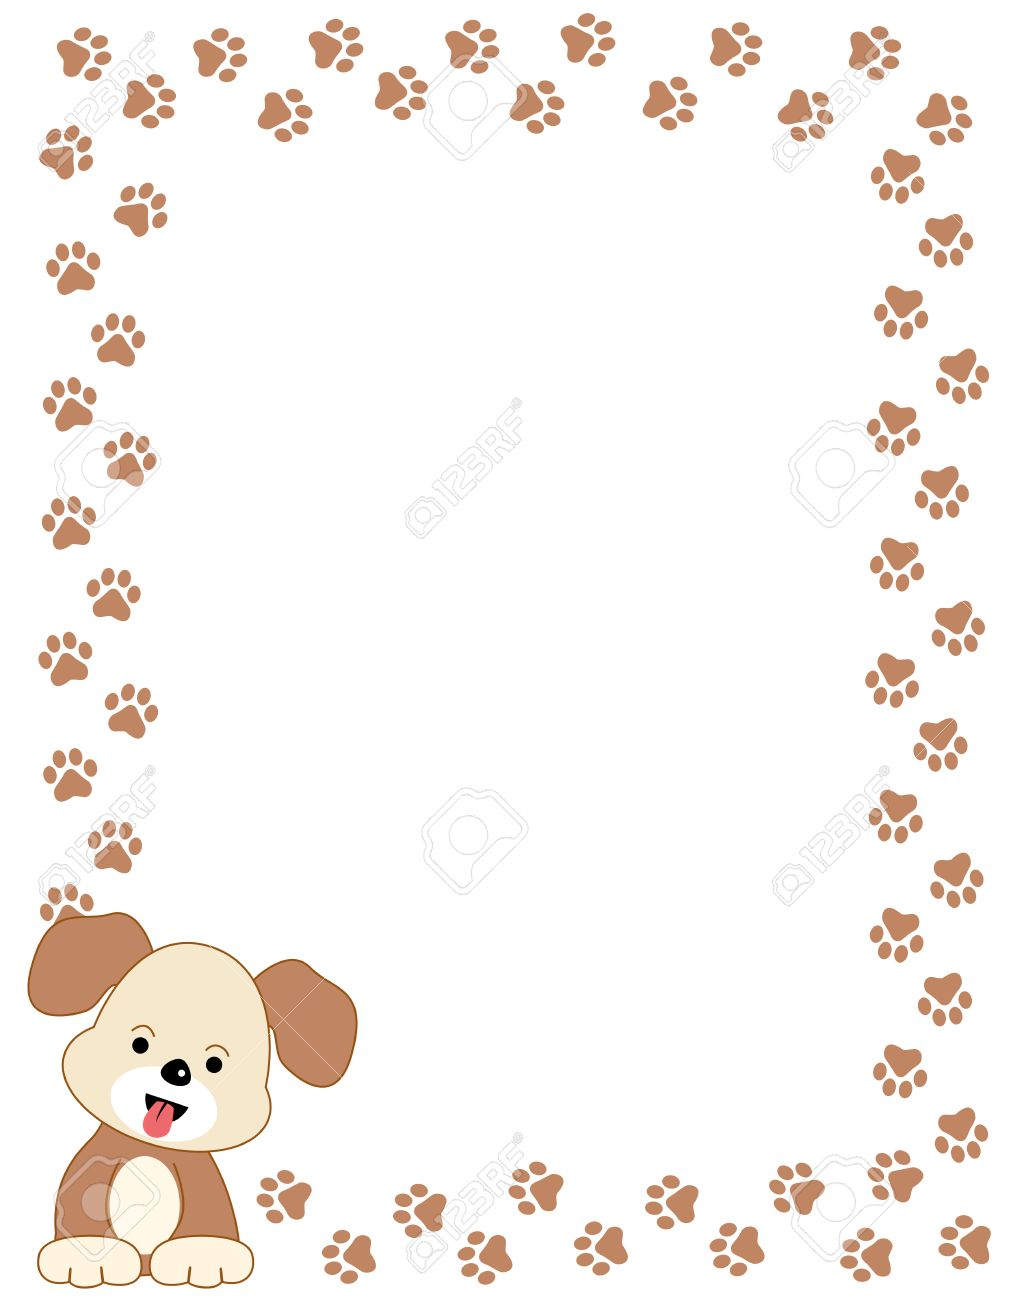 brown color dog paw print border frame with a cute dog in left bottom corner - Dog Frame